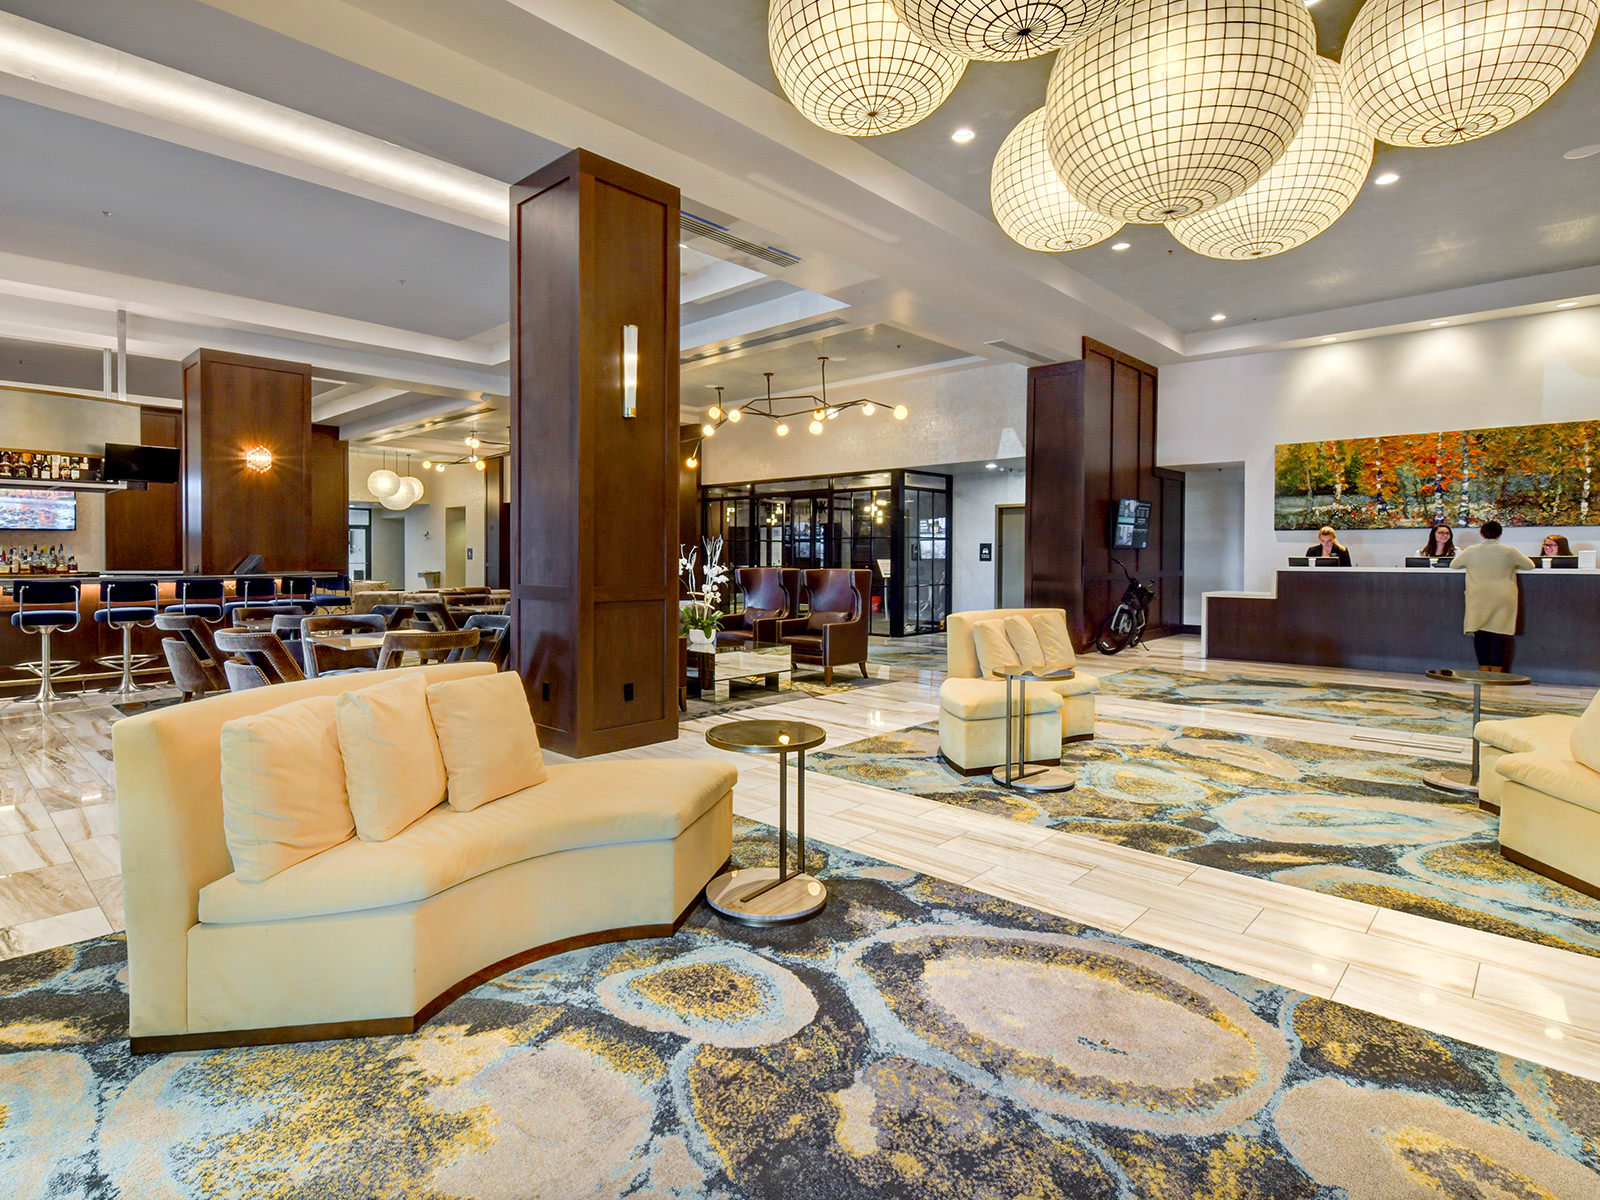 a spacious hotel lobby with seating